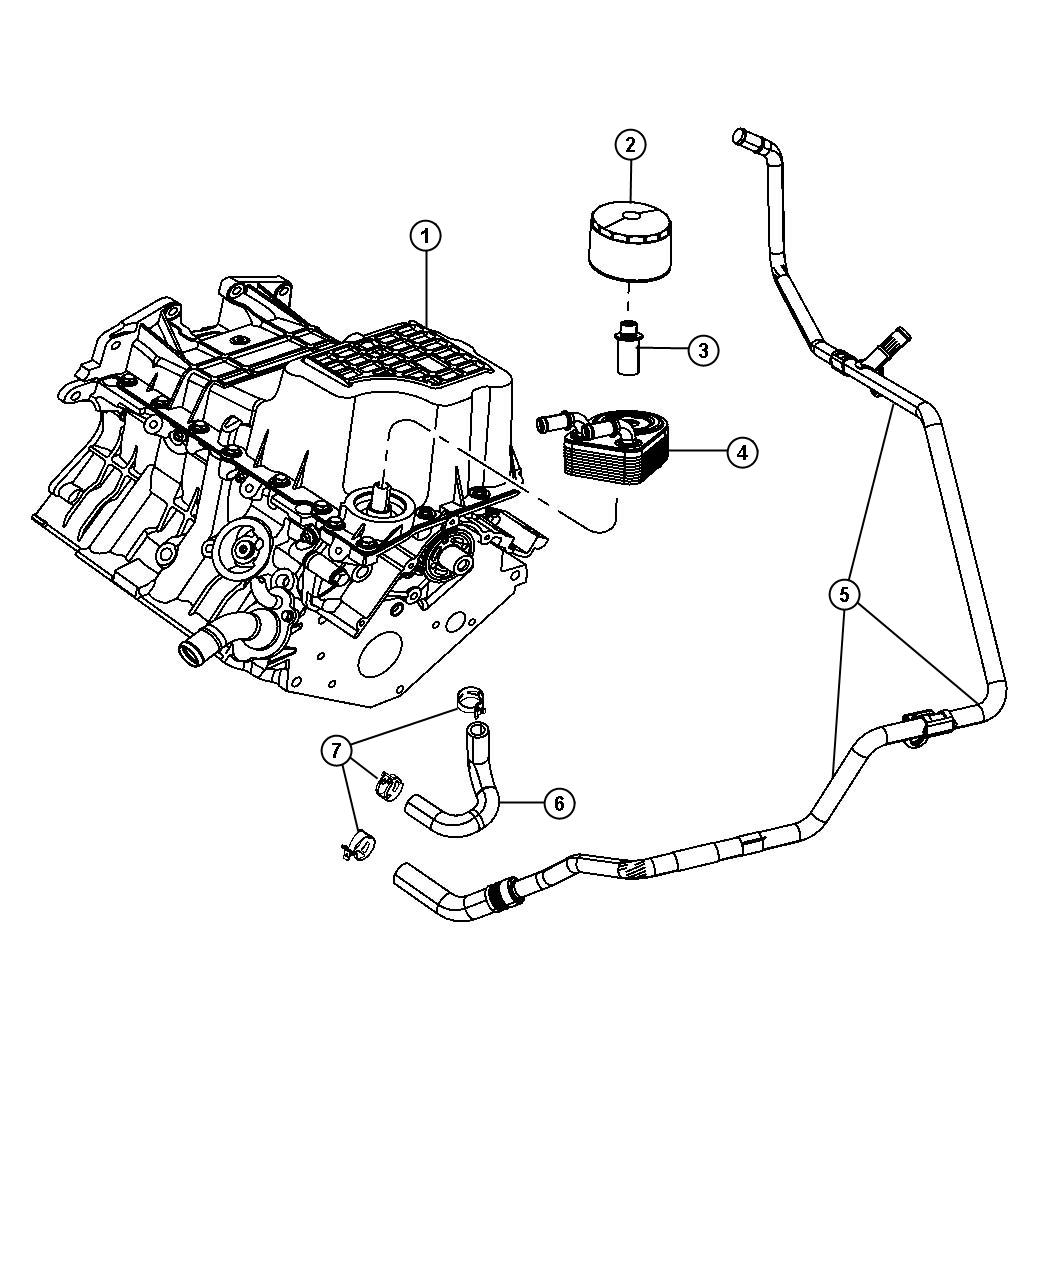 Chrysler Concorde Engine Diagram on 2002 chrysler concorde transmission